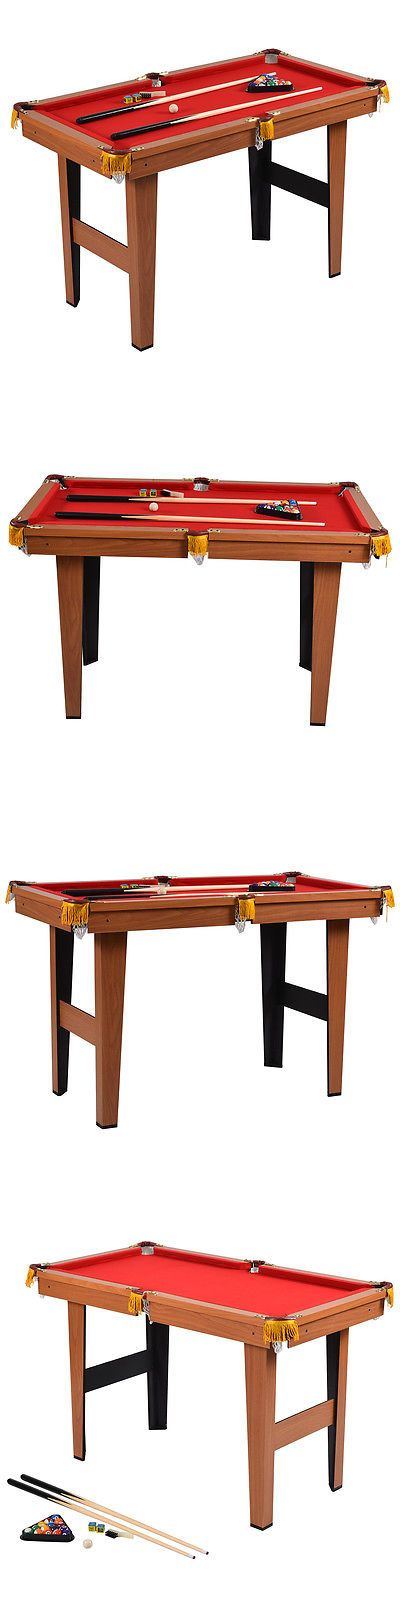 """Tables 21213: 48"""" Mini Table Top Pool Table Game Billiard Set Cues Balls Gift Indoor Sports BUY IT NOW ONLY: $85.99"""